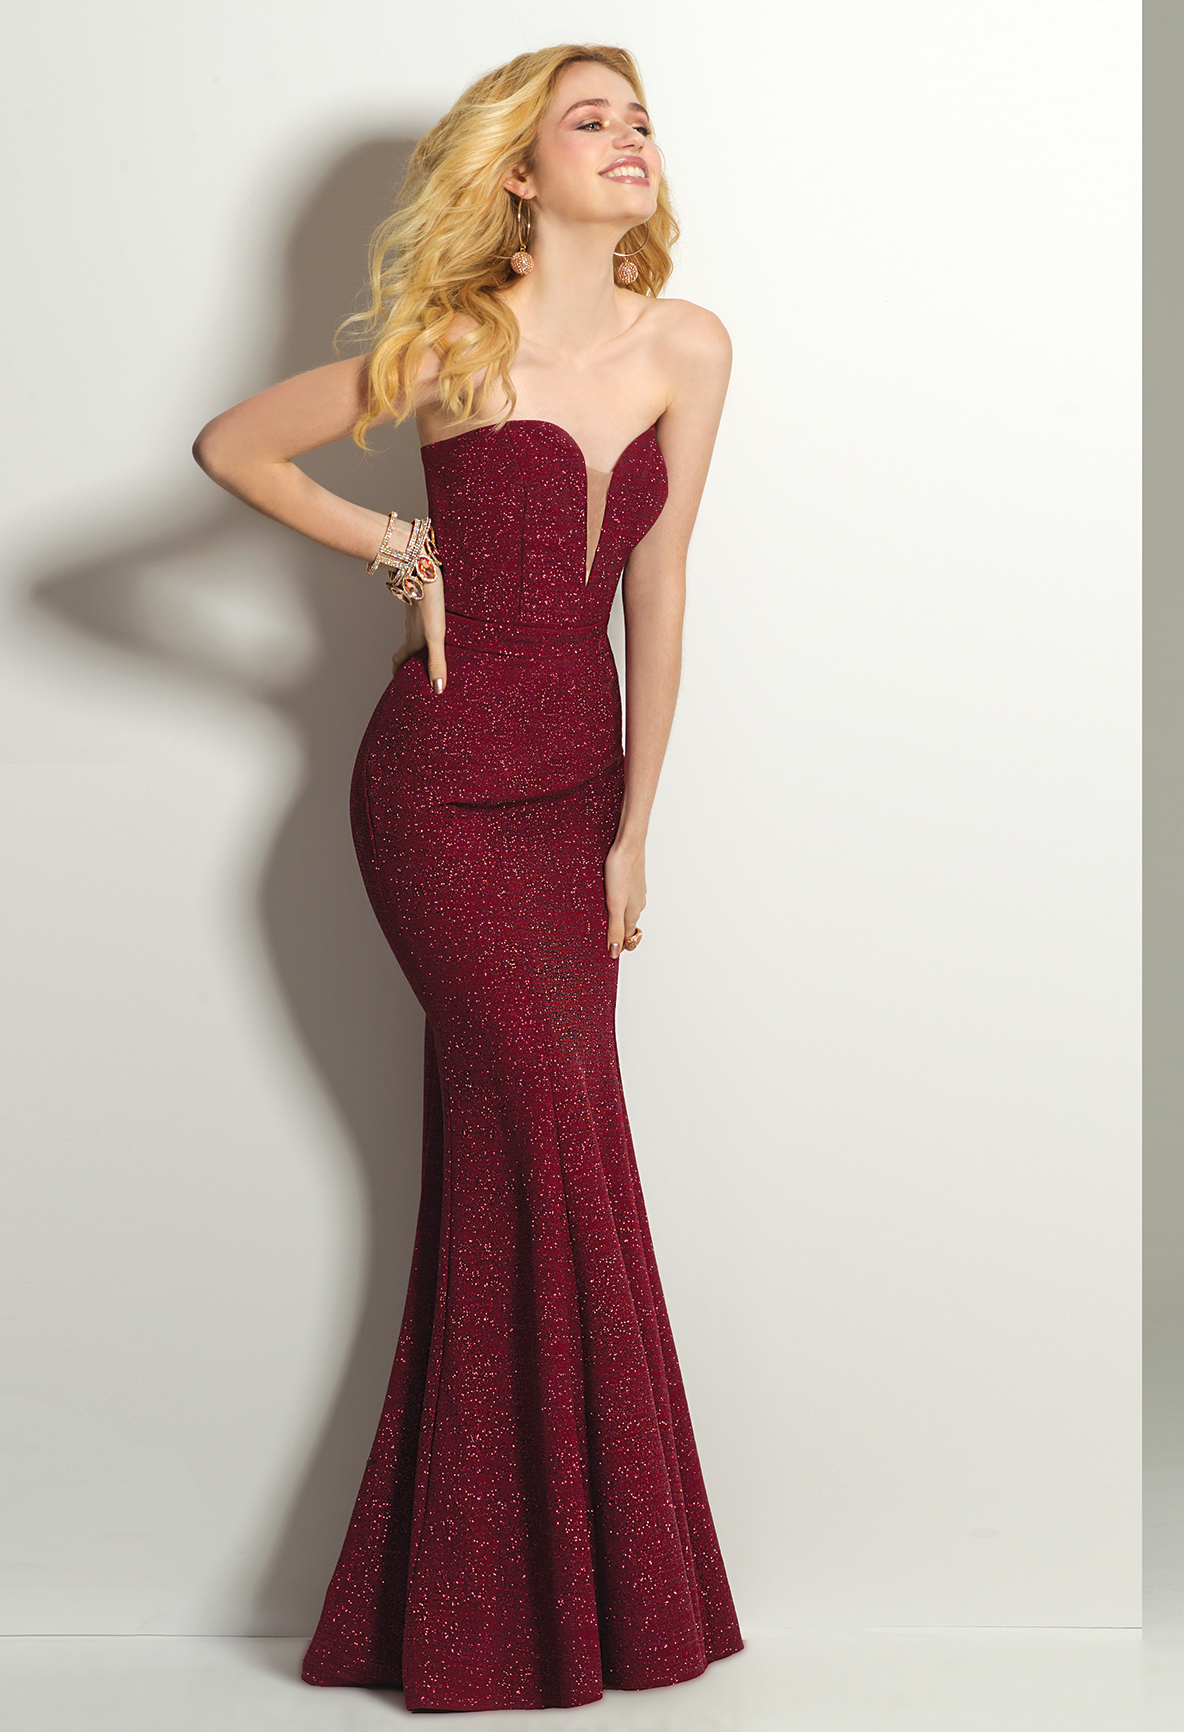 Own the night in this sophisticated evening gown! With its ...